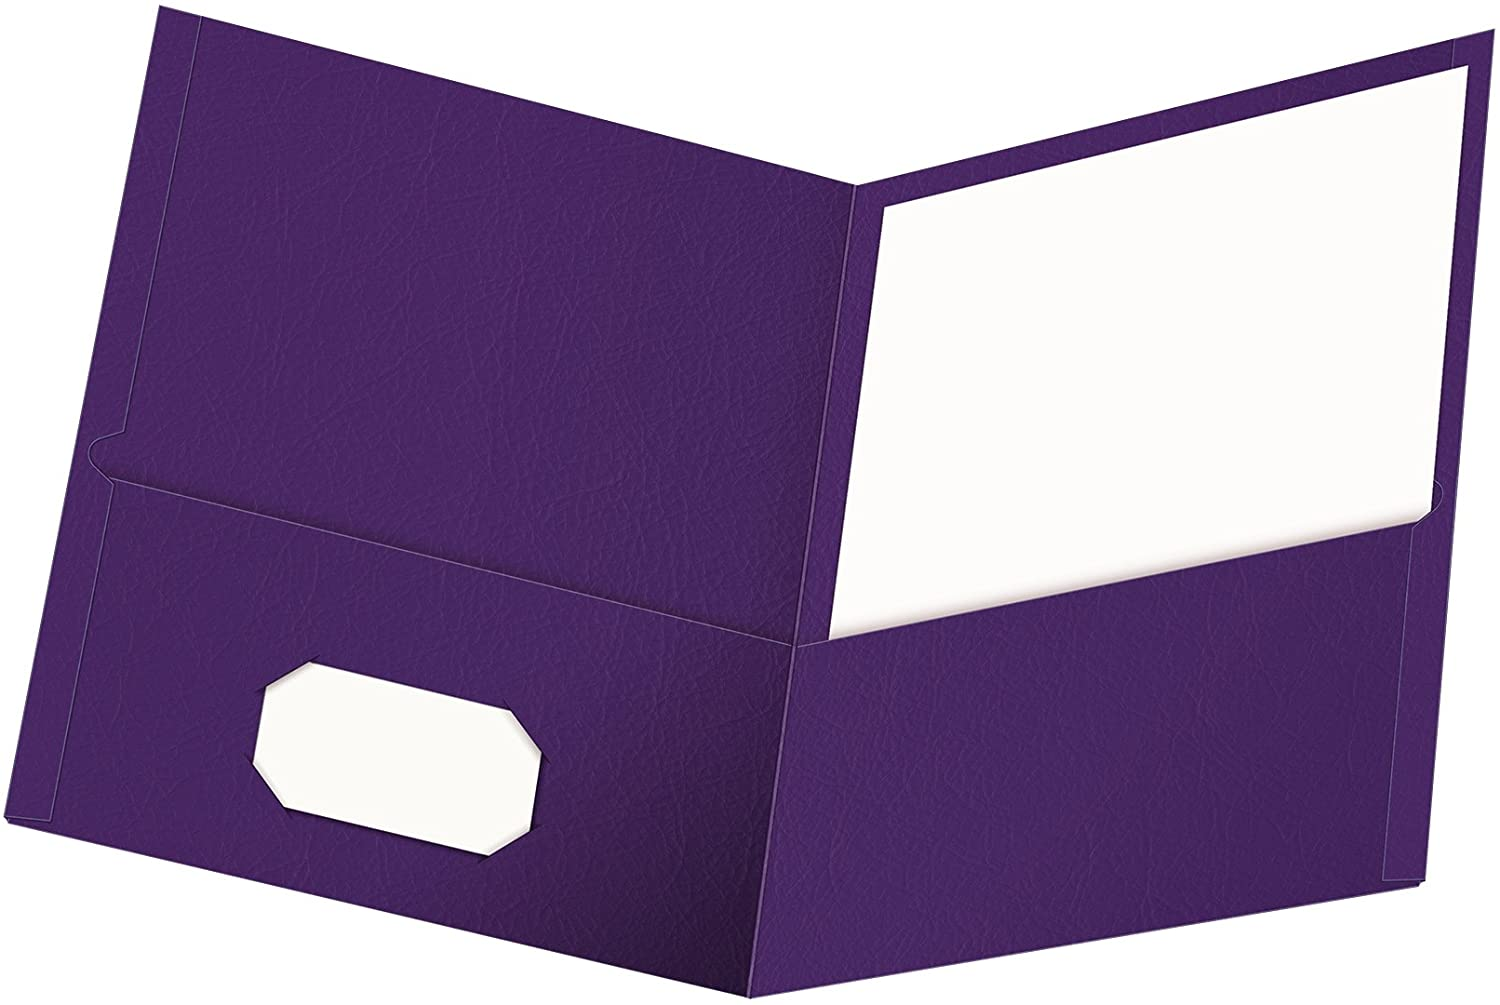 Oxford Twin-Pocket Folders, Textured Paper, Letter Size, Purple, Holds 100 Sheets, Box of 25 (57514EE), 8-1/2 x 11